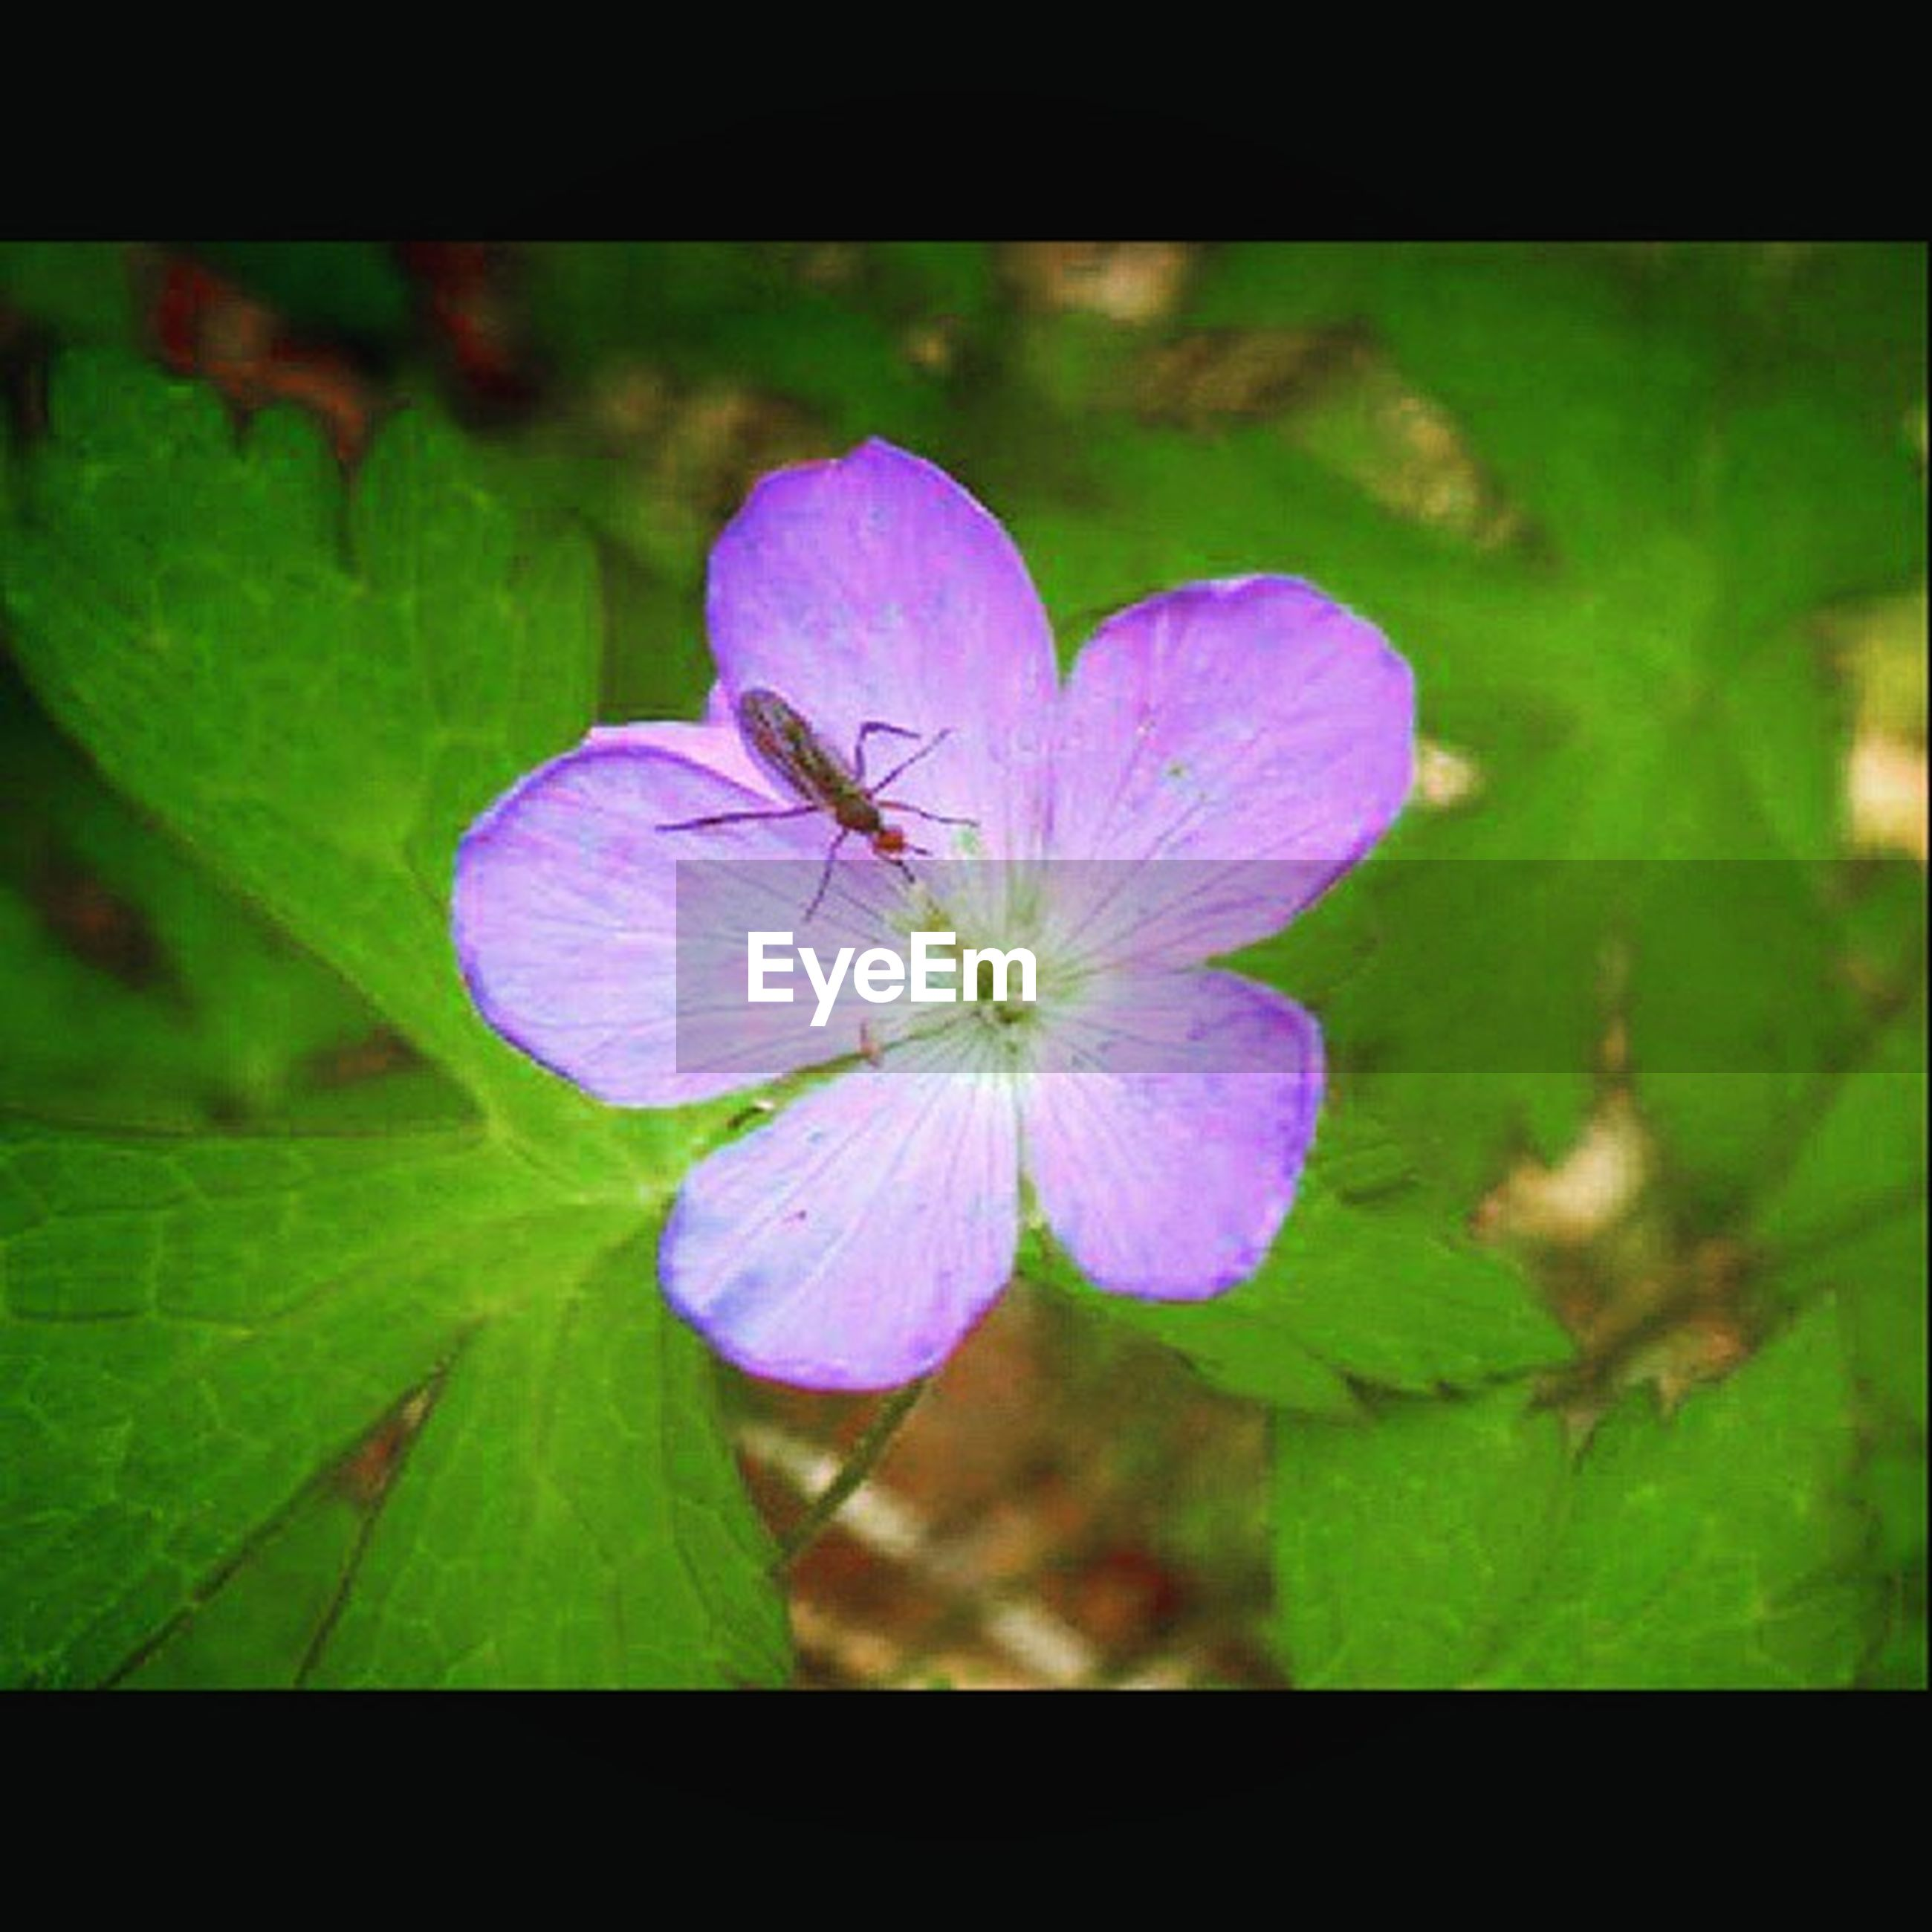 flower, freshness, petal, fragility, flower head, growth, beauty in nature, transfer print, close-up, blooming, purple, nature, leaf, plant, single flower, focus on foreground, auto post production filter, in bloom, pollen, blossom